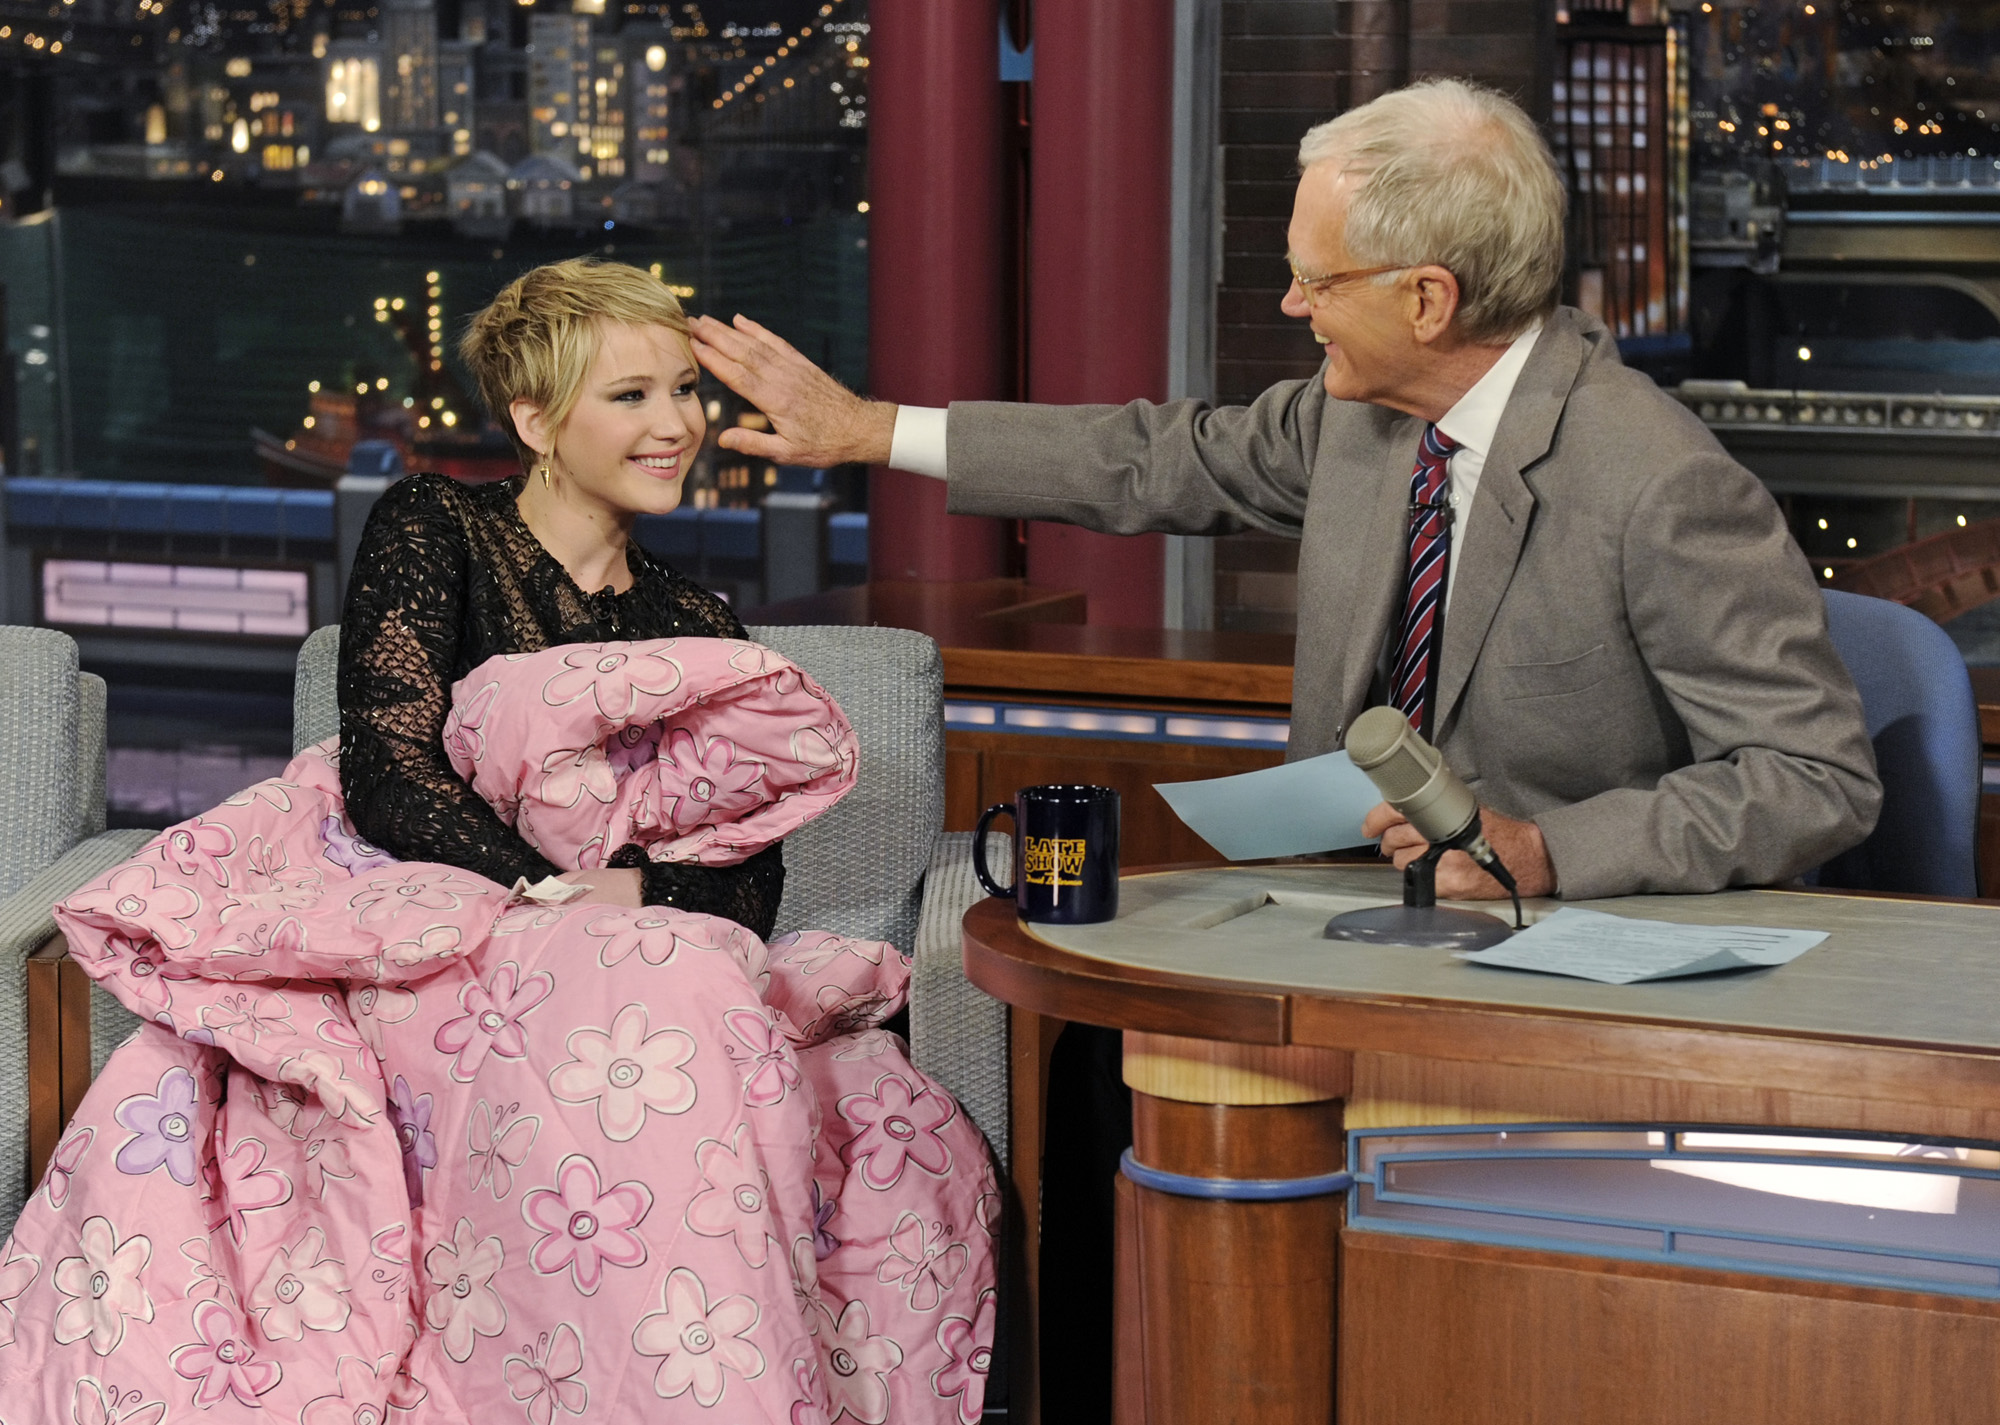 Jennifer Lawrence gets cozy with Dave when she visits the Late Show with David Letterman on Nov. 20, 2013.